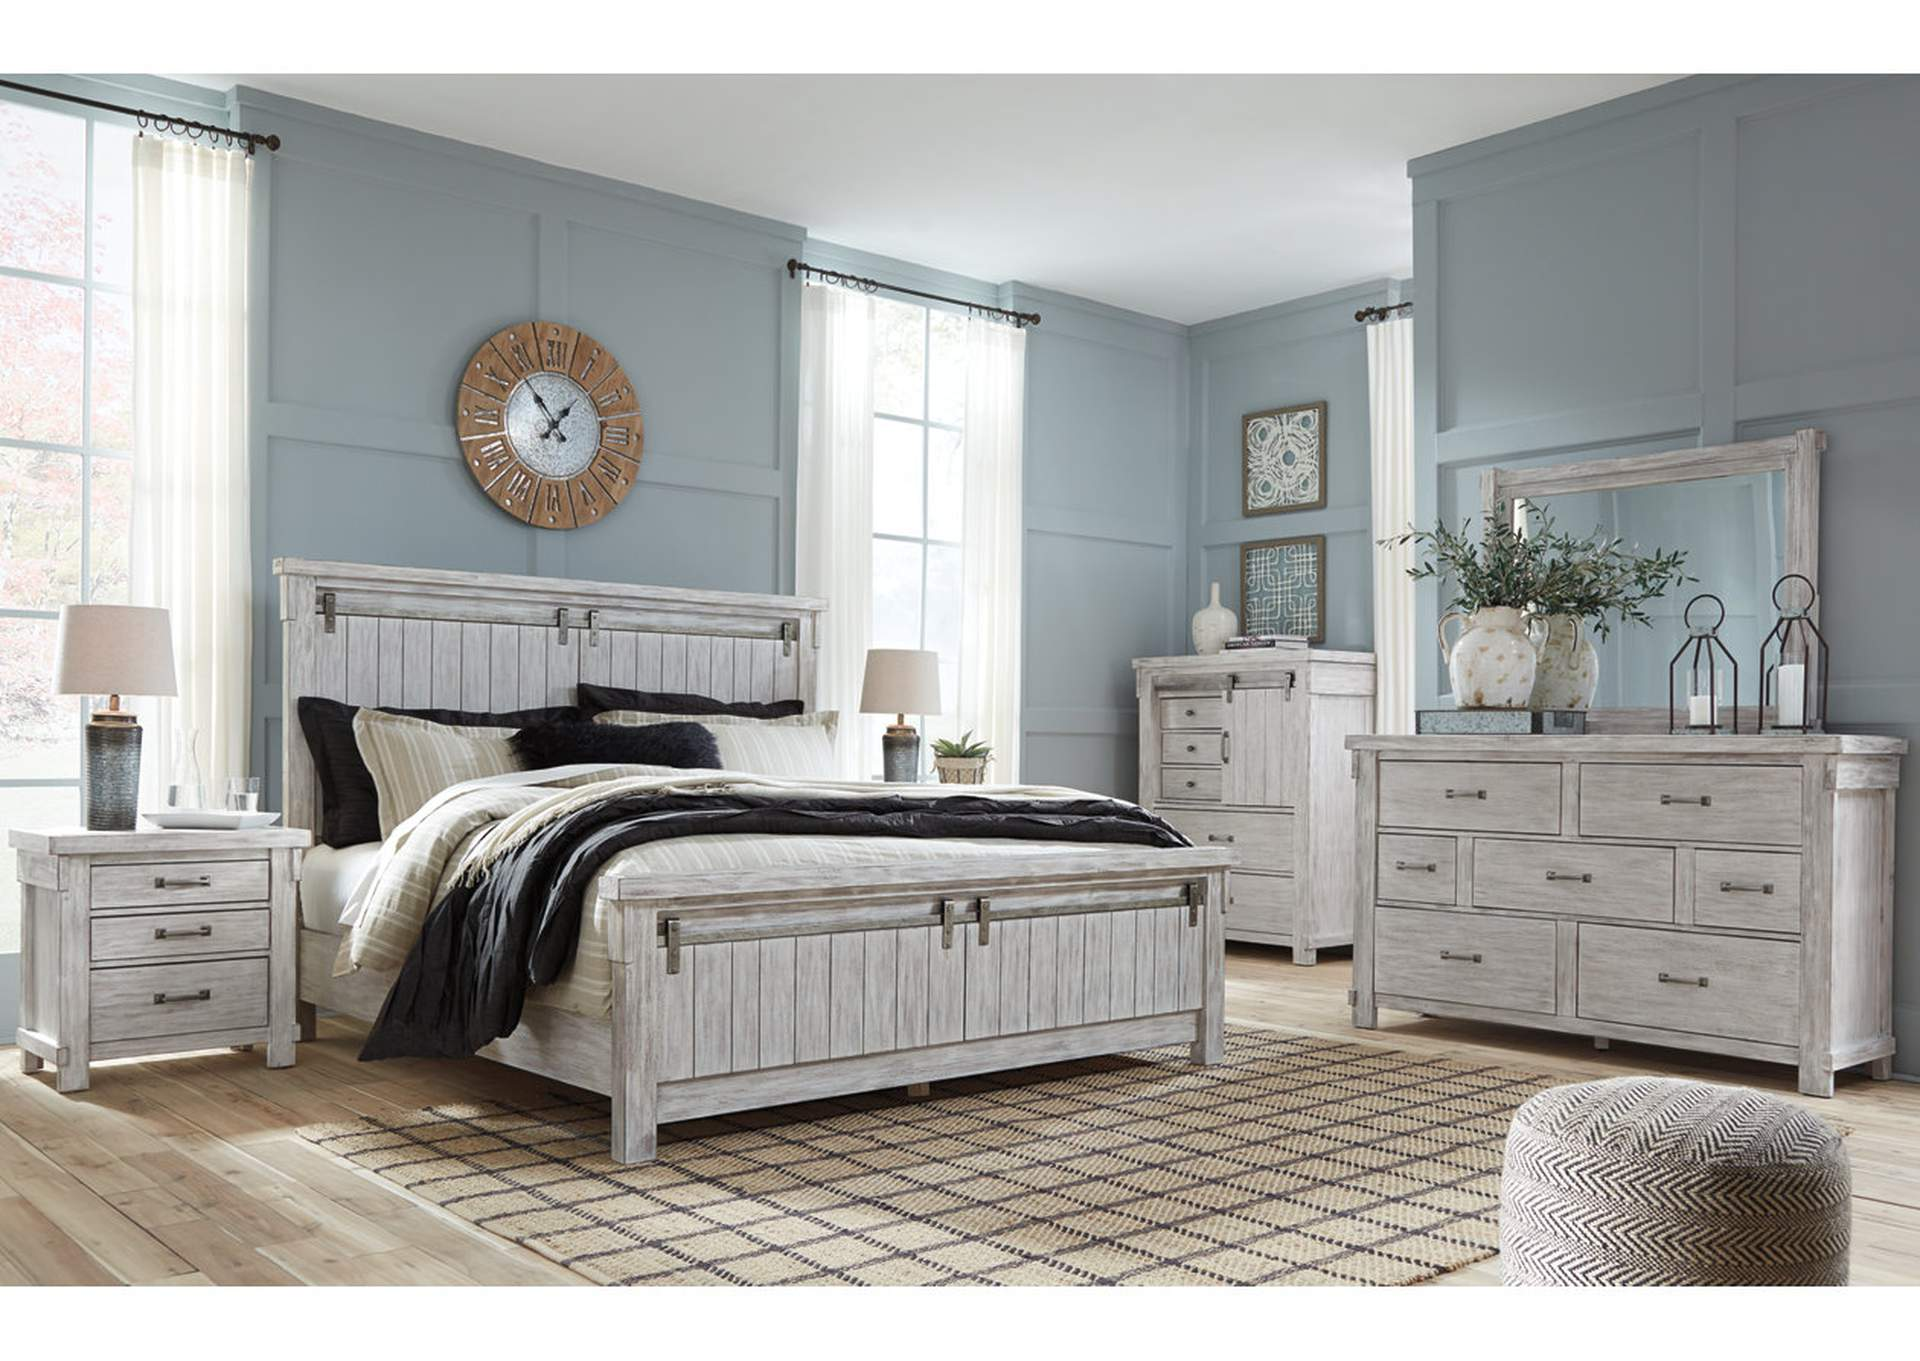 Brashland Queen Panel Bed w/Dresser and Mirror,Signature Design By Ashley